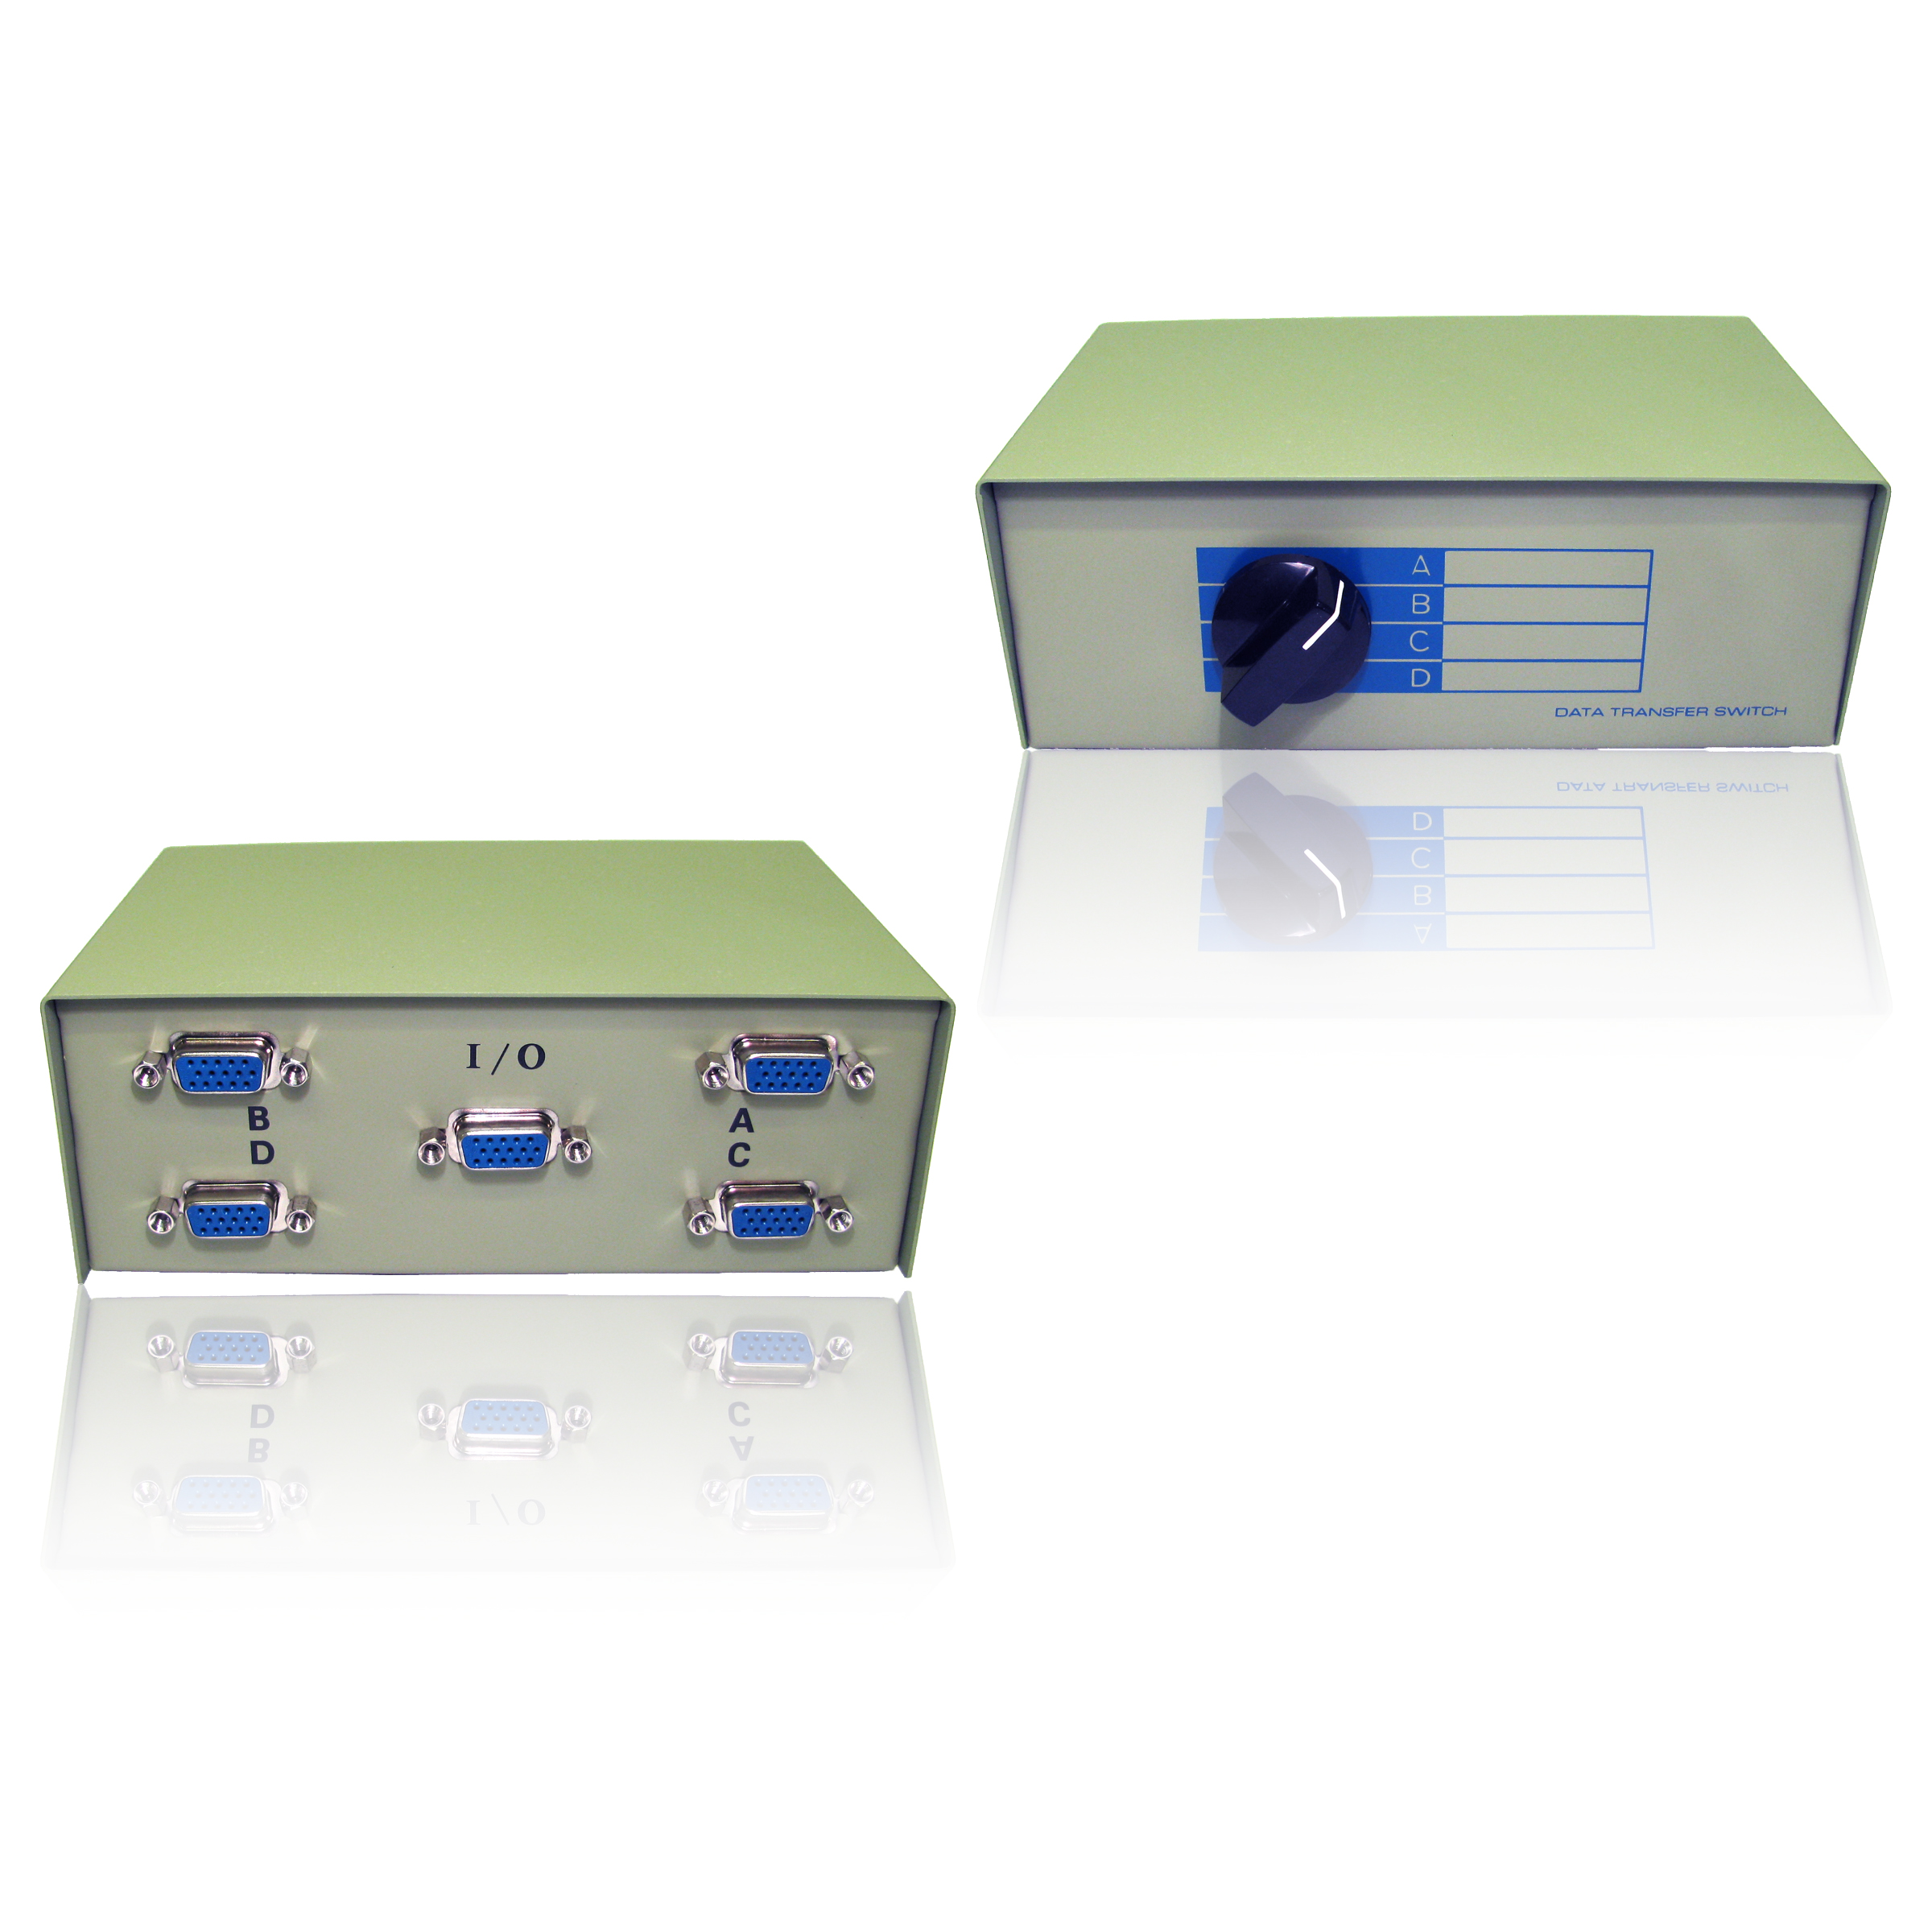 Svga Vga Switch Box 4 Way Port For Tft Crt Pc Computer Screen Monitor Toslink Optical